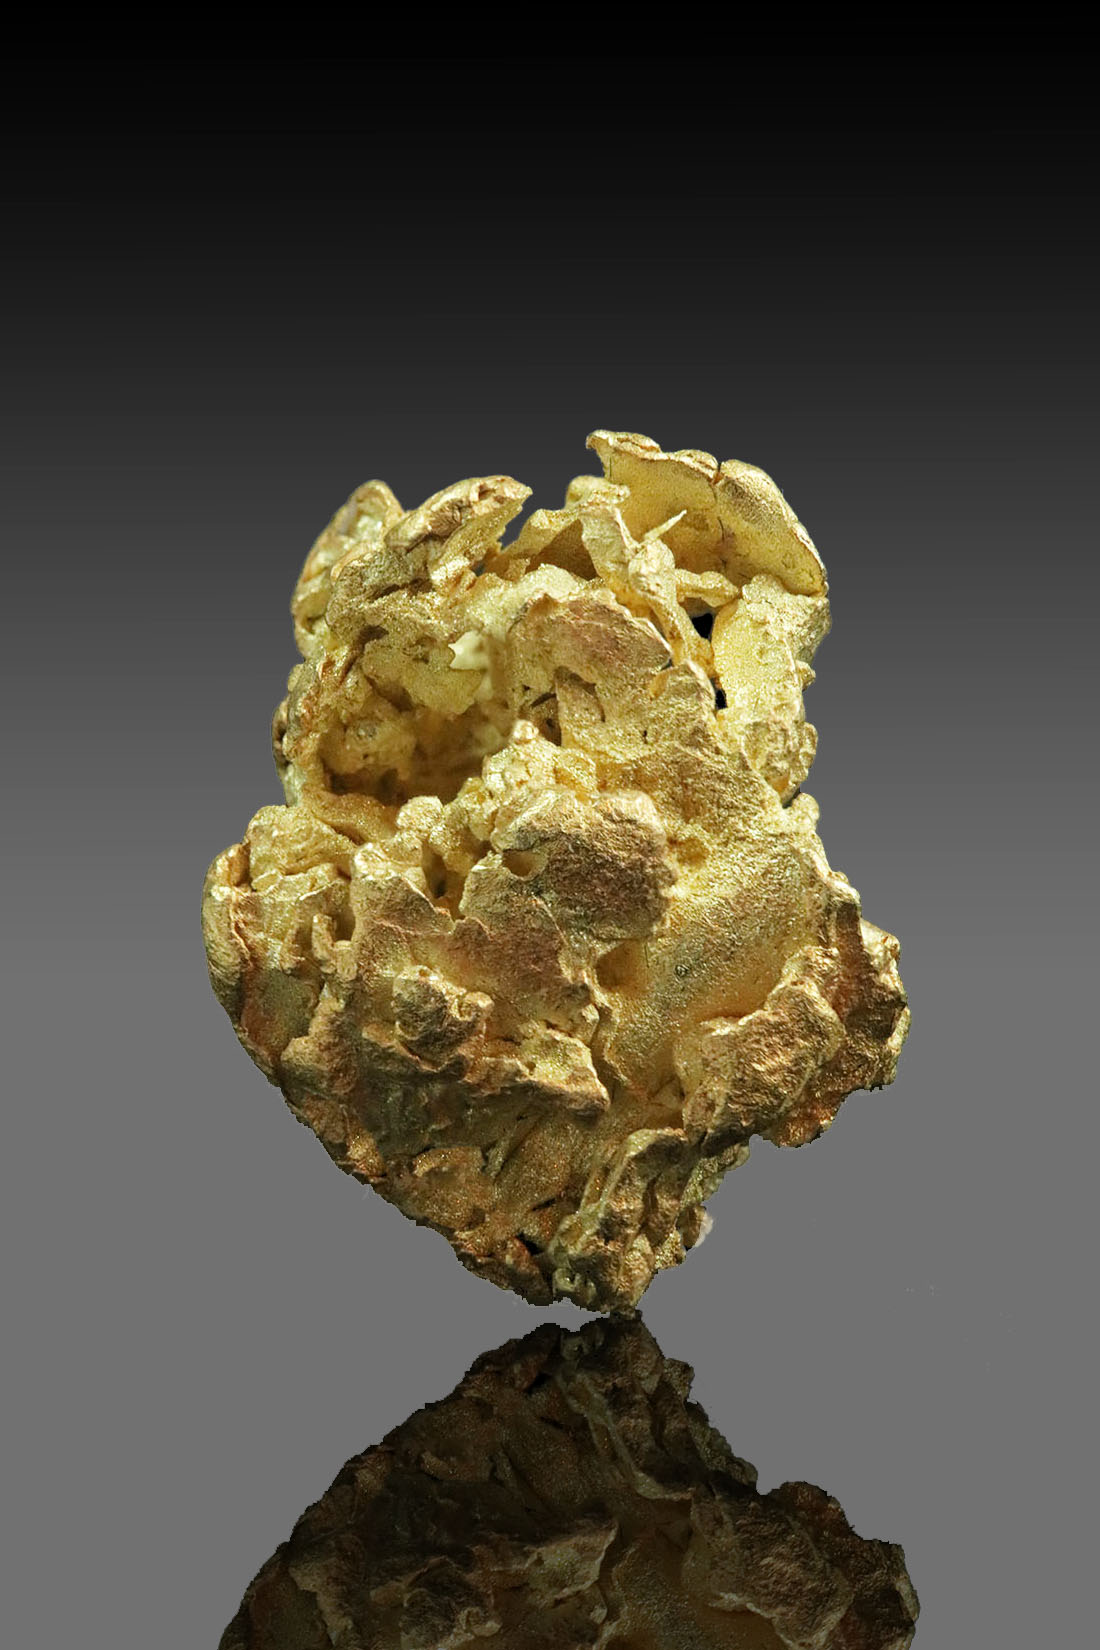 Wavy Leaf Gold Cluster Nugget - A Rarity from Alaska